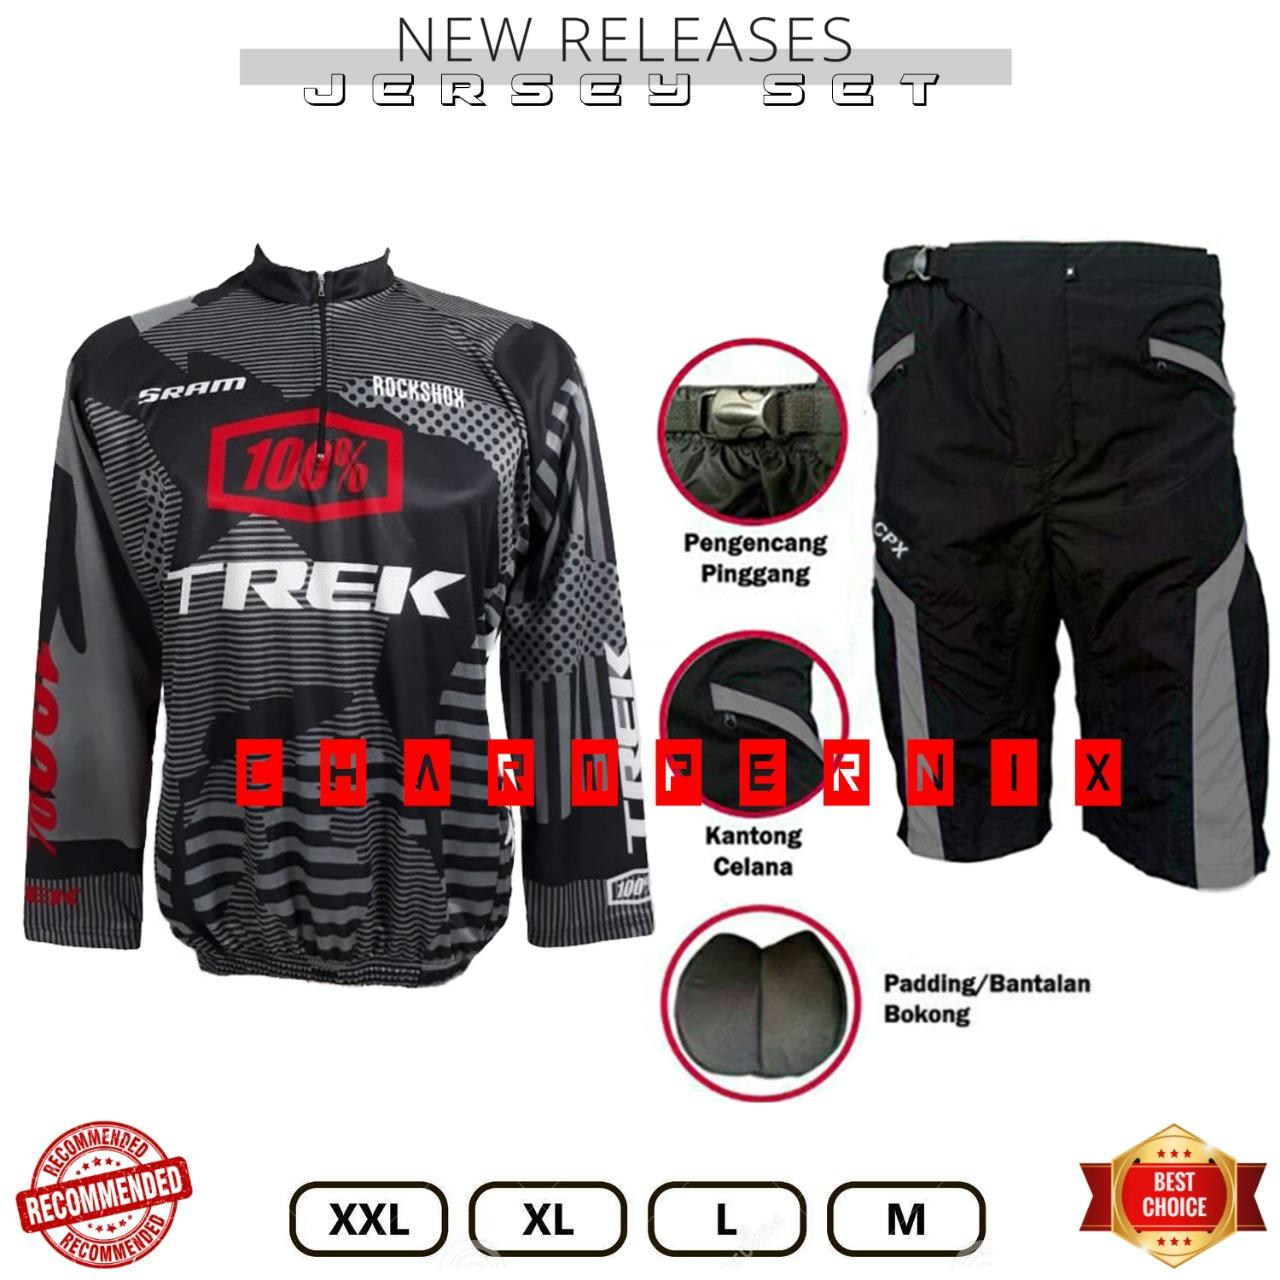 Promo Paket Baju Jerseysepeda Roadbike Xc By Bike To Nature.